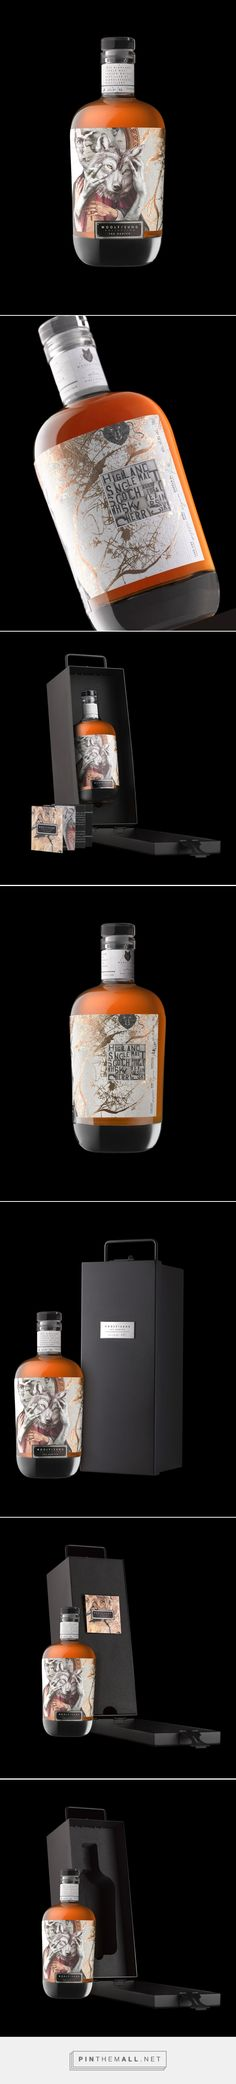 Woolf Sung whiskey packaging design by Stranger & Stranger - http://www.packagingoftheworld.com/2017/10/woolf-sung.html - created via https://pinthemall.net